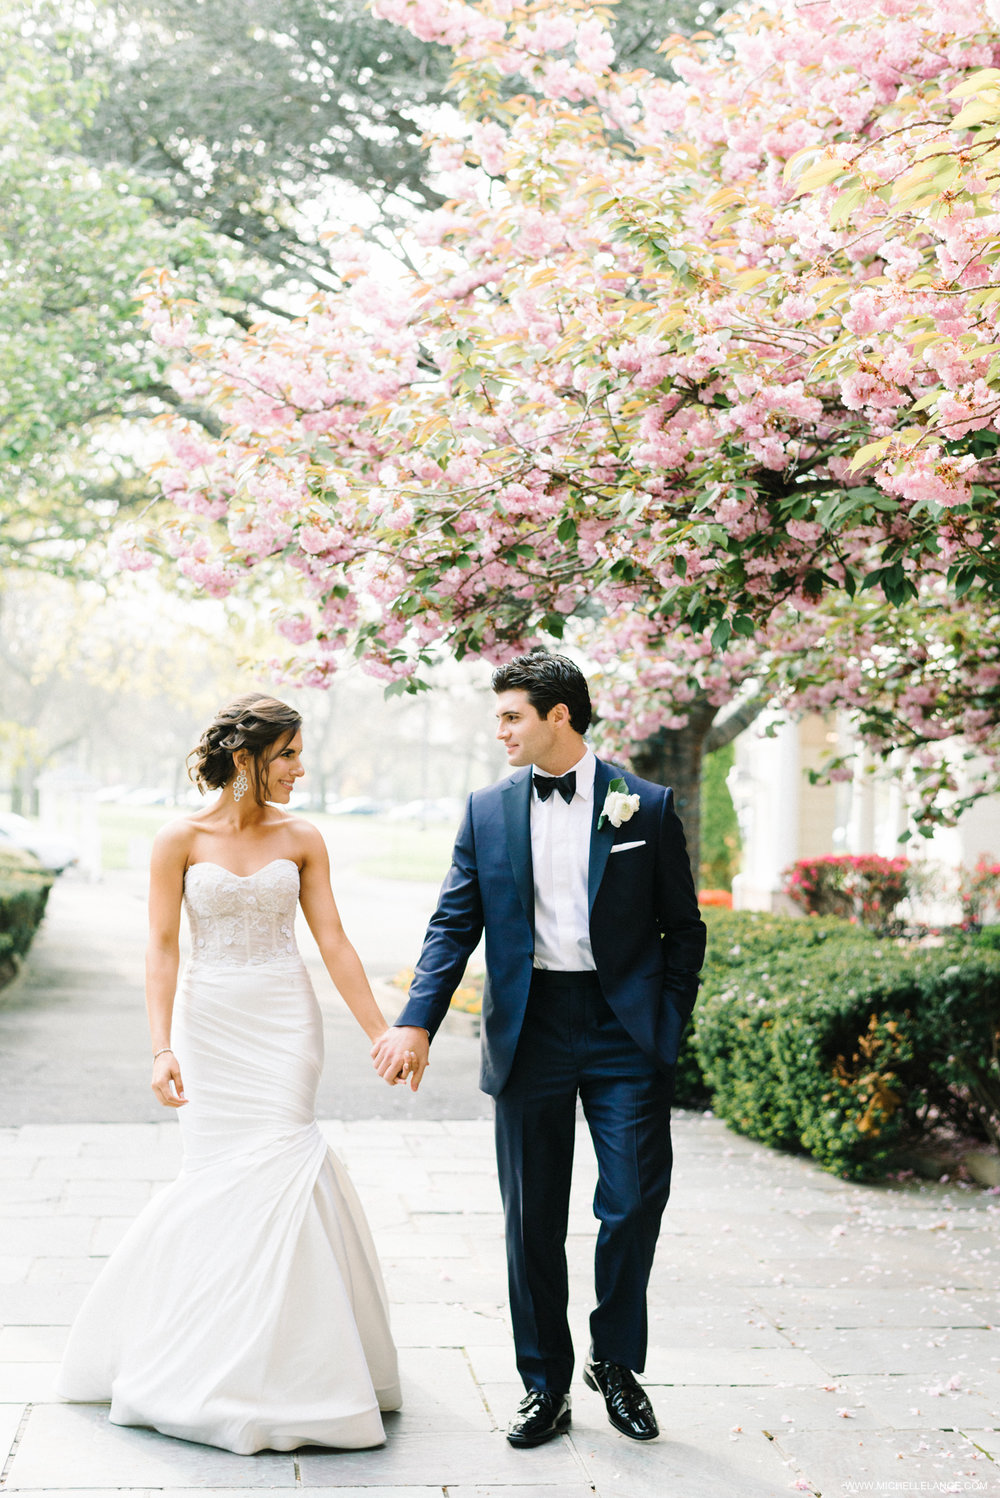 NY Wedding Photographer with Cherry Blossoms